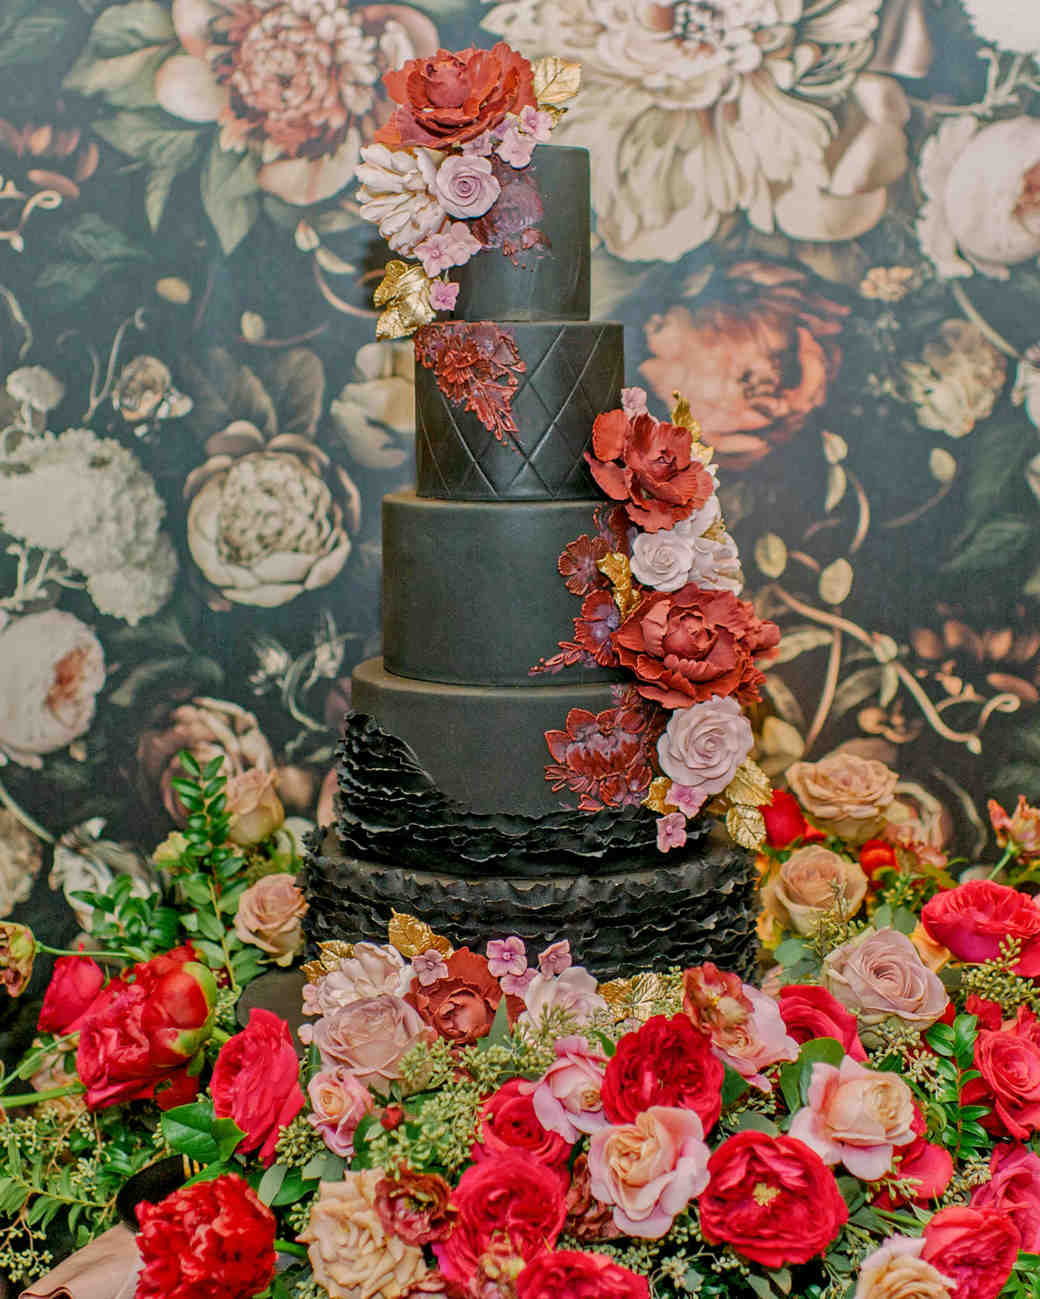 tillie dalton wedding cake